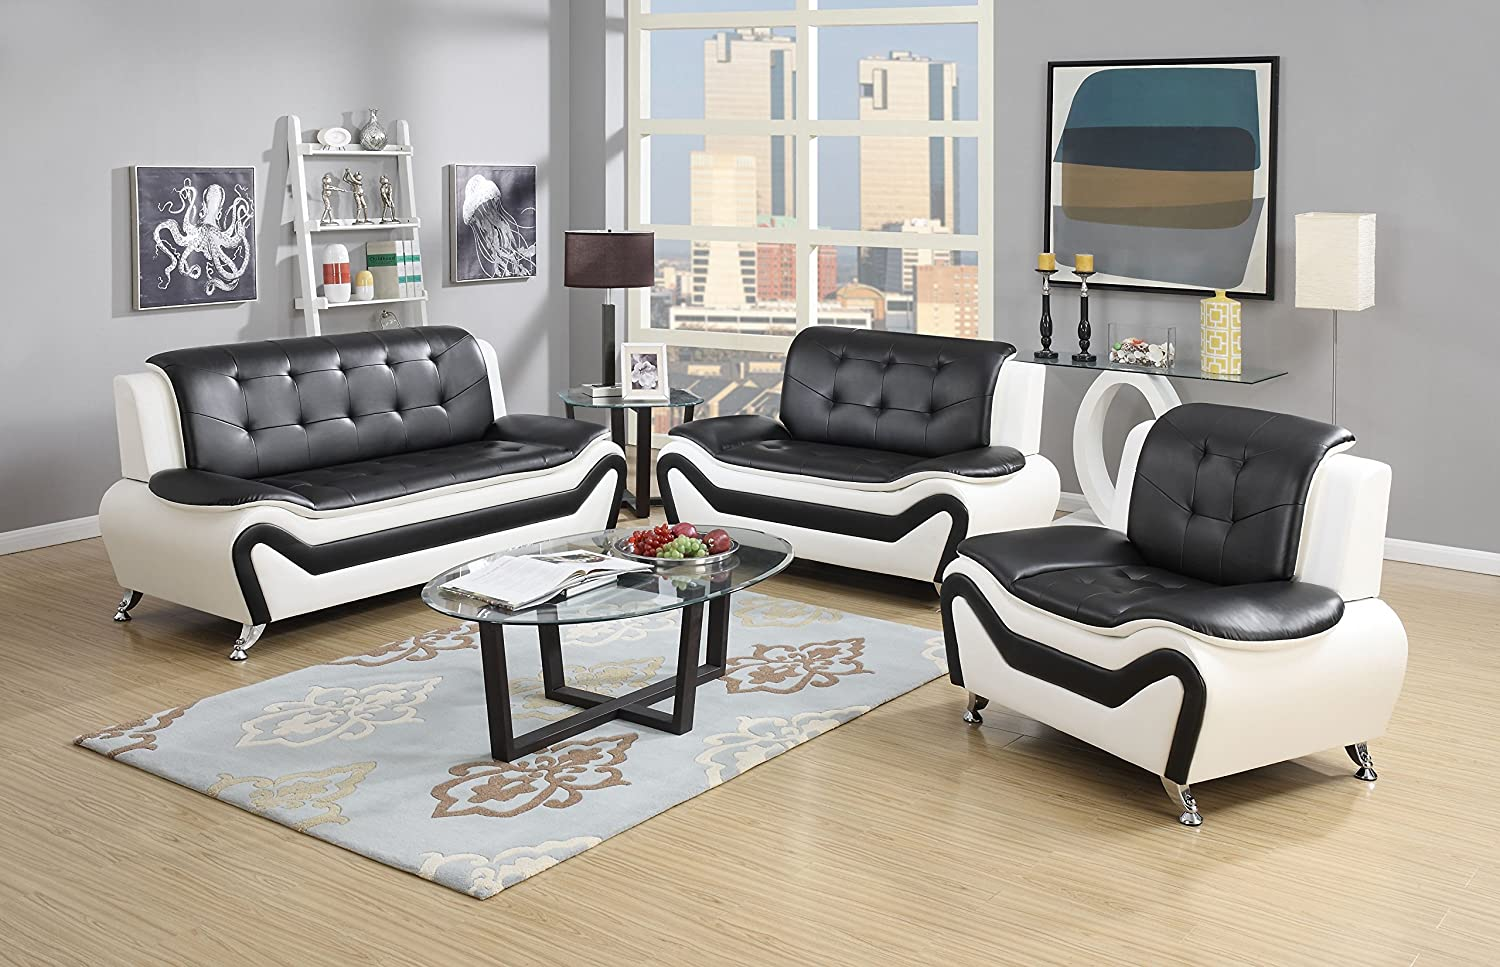 Delightful Amazon.com: US Pride Furniture 2 Piece Modern Bonded Leather Sofa Set With  Sofa And Loveseat, White/Black: Kitchen U0026 Dining